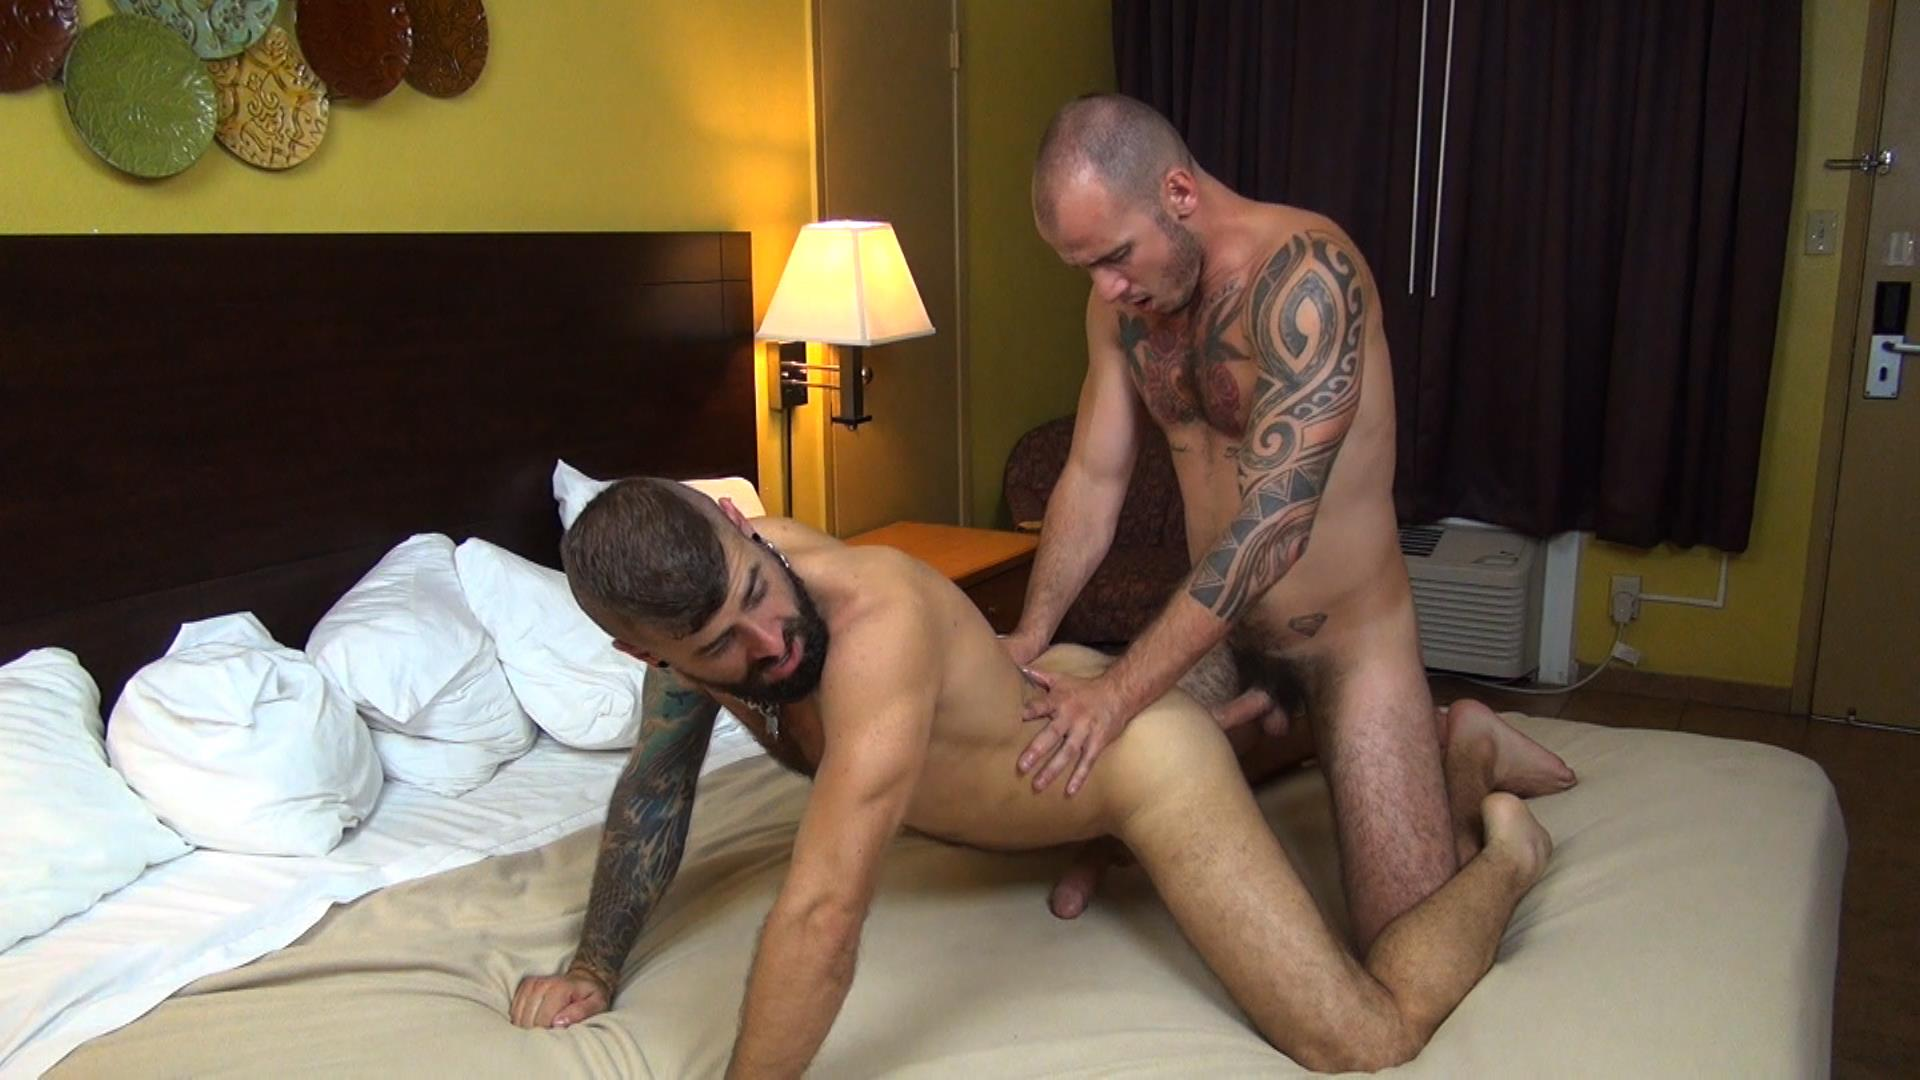 Raw Fuck Club Jon Shield and Cam Christou Guys Fucking Bareback Sex Tape In A Sleazy Hotel Amateur Gay Porn 6 Jon Shield and Cam Christou Fucking Bareback In A Sleazy Motel